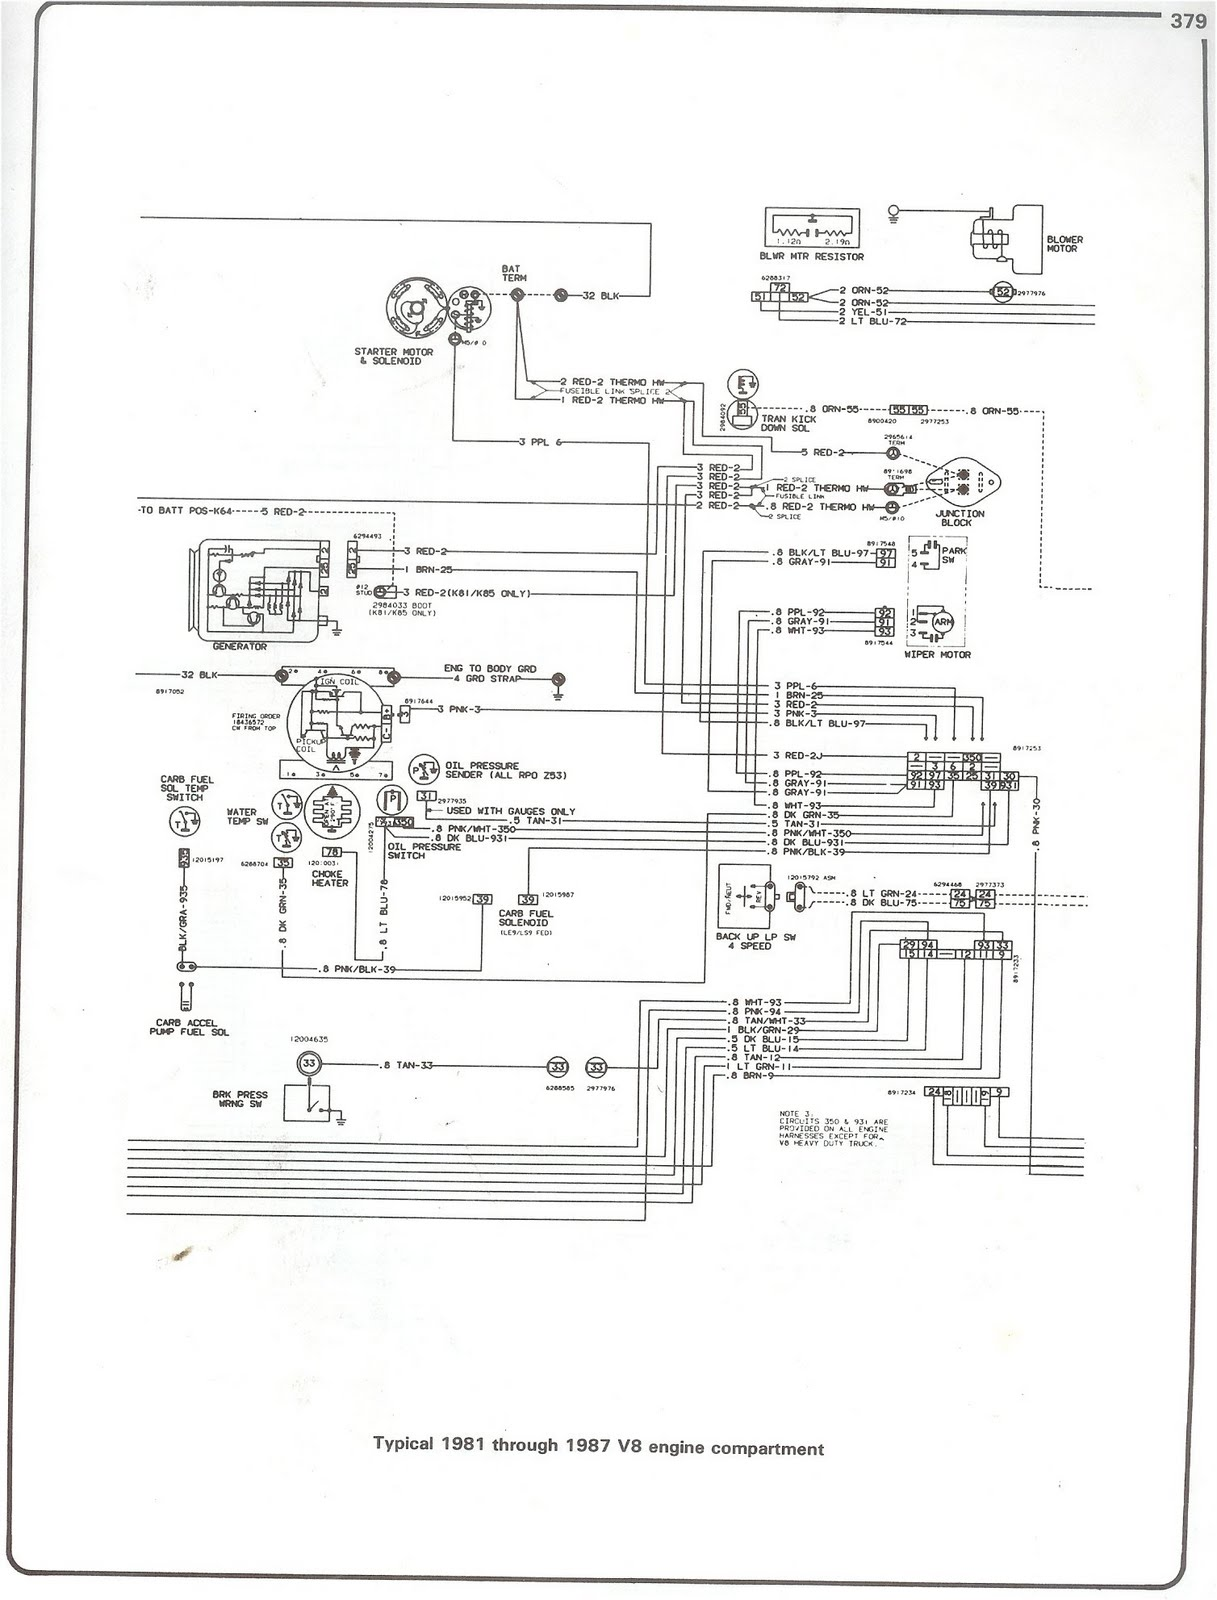 small resolution of 86 chevy truck wiring harness wiring diagram name 81 chevy truck wiring harness